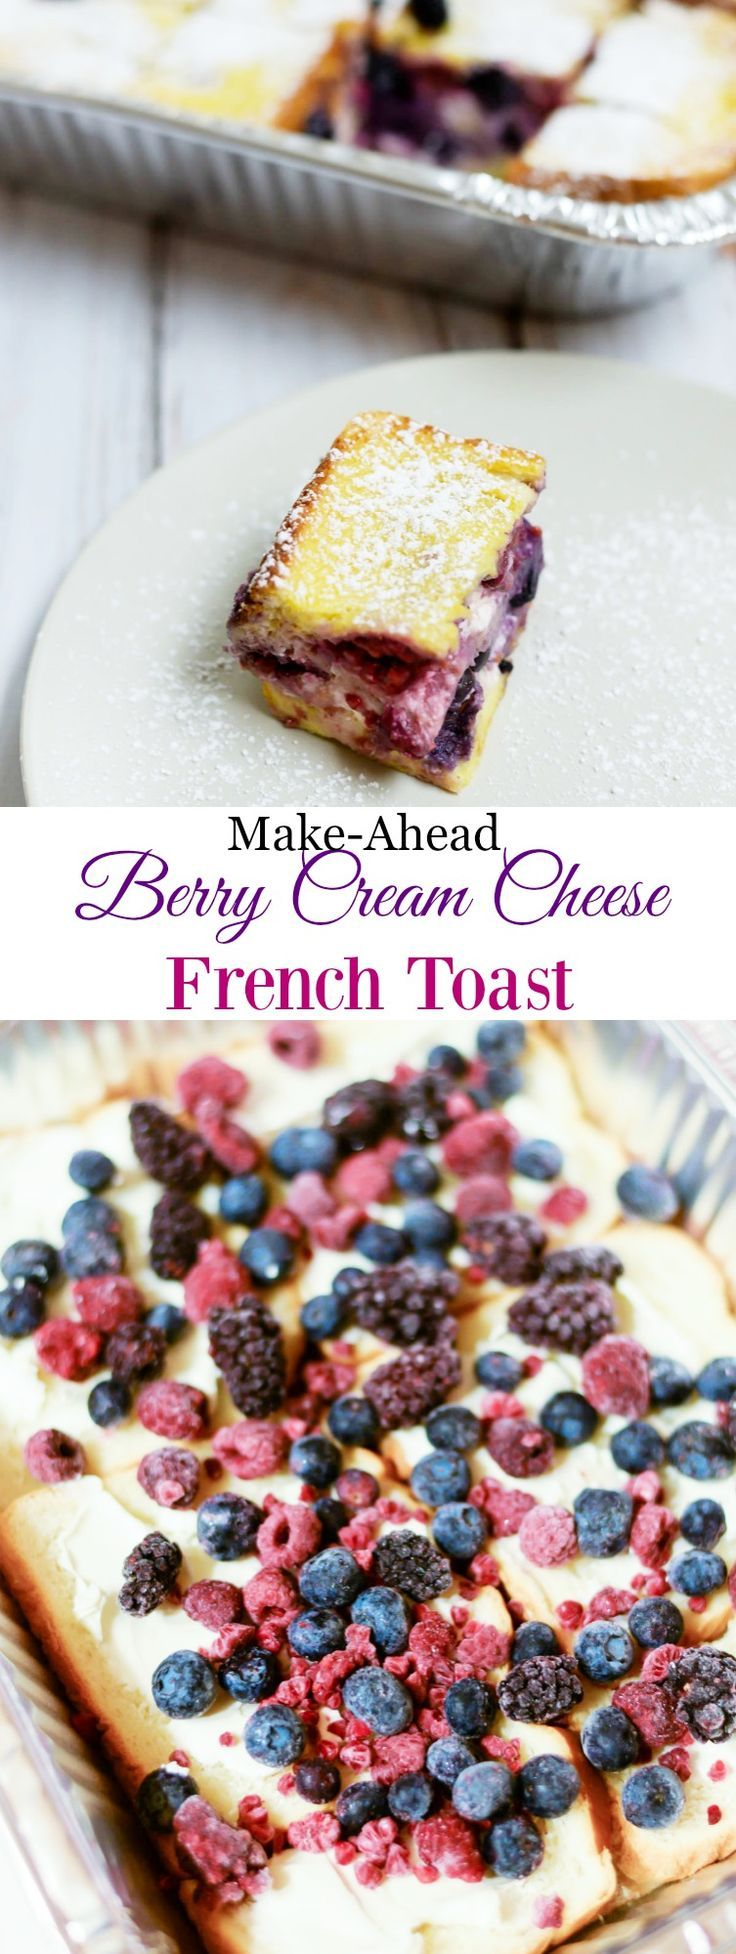 Berry Cream Cheese French Toast that is a perfect make-ahead breakfast.